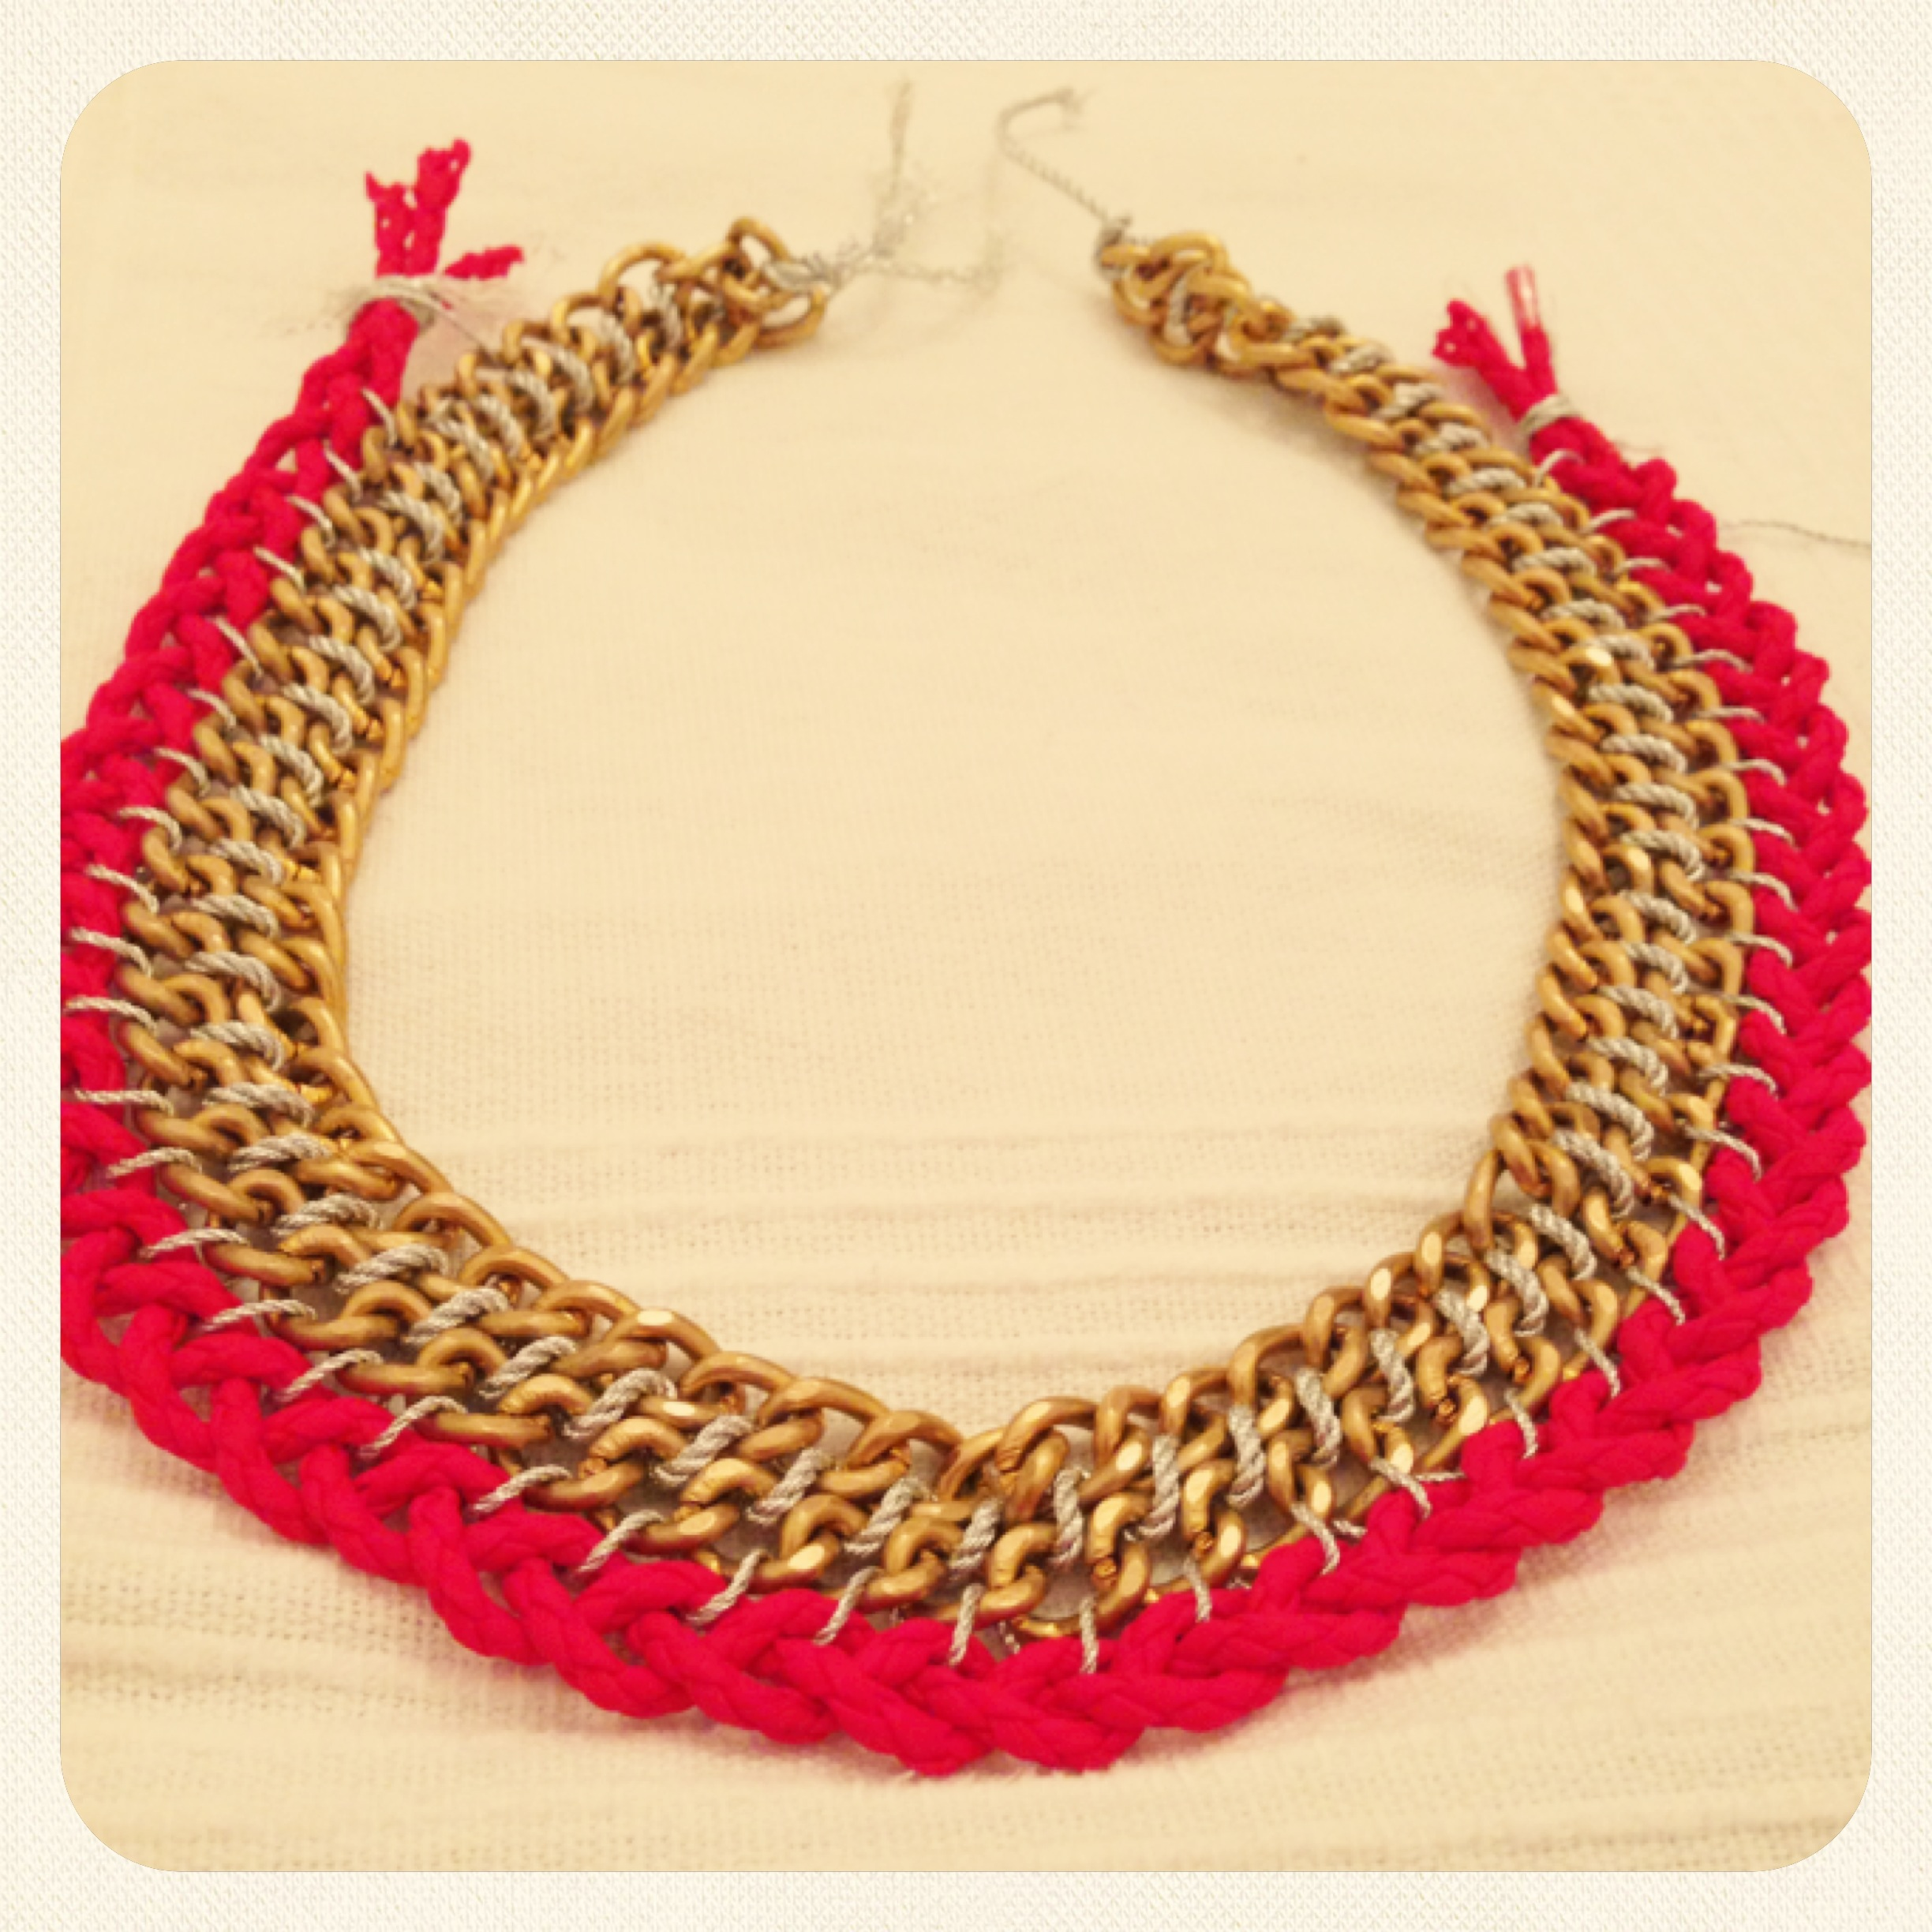 collares y en result picada pin image necklacebead jewellery aretes diy necklace nacar for